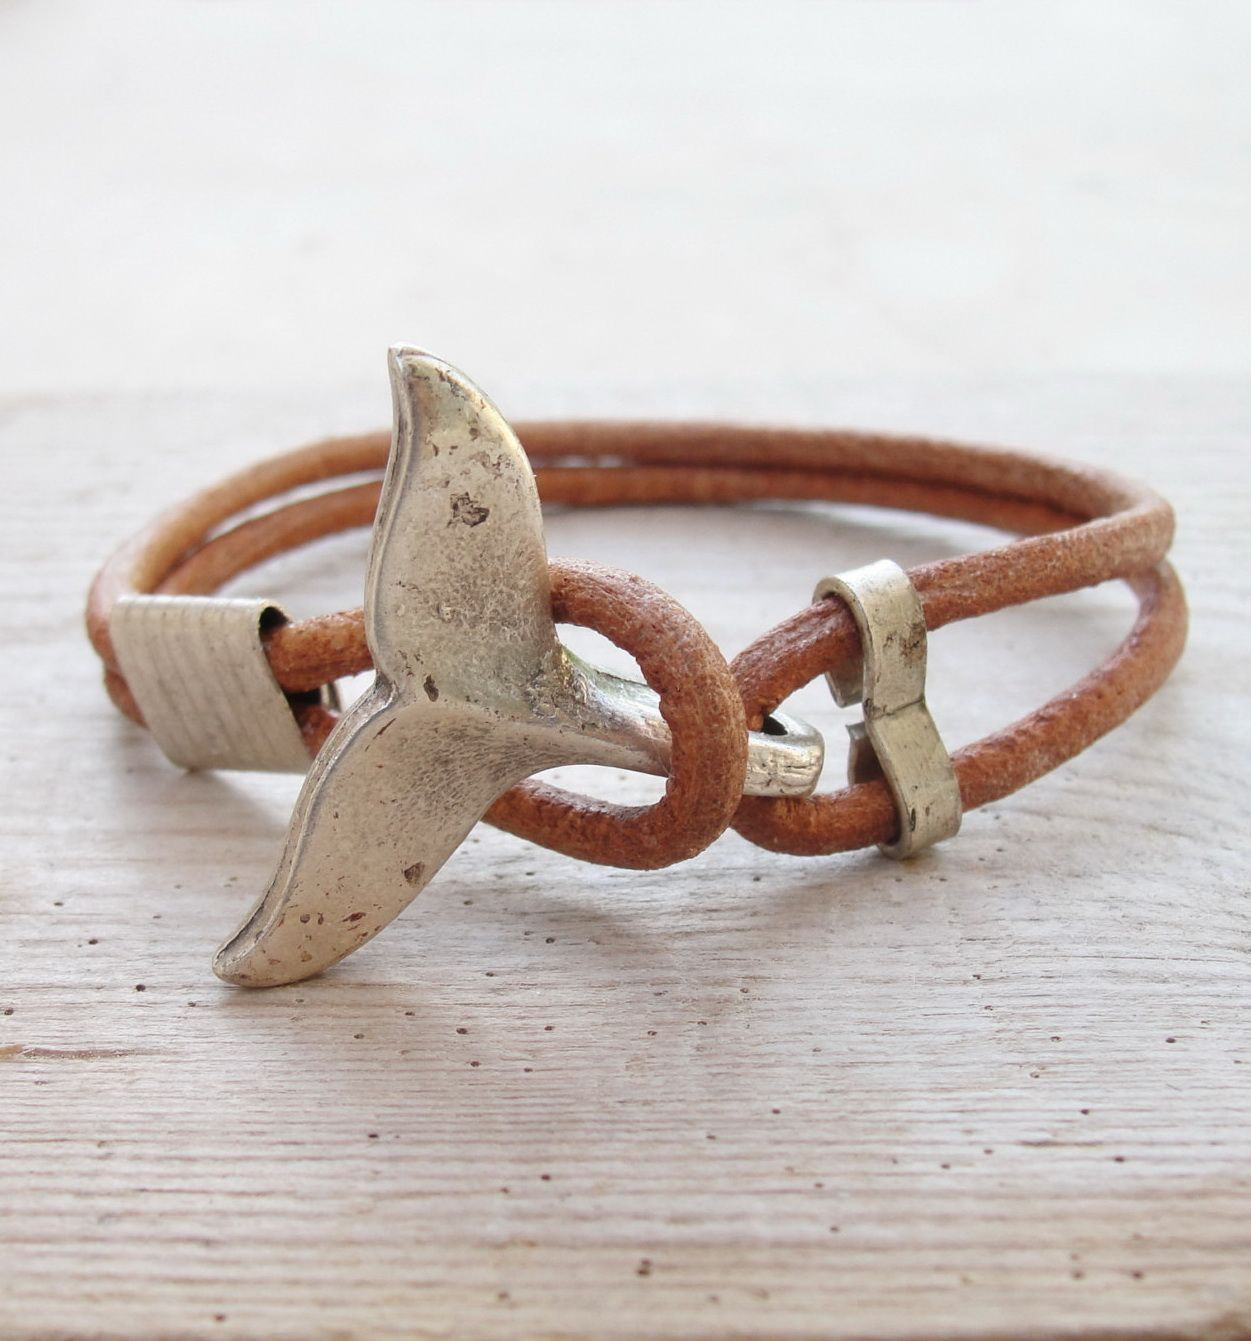 Whale Tail Bracelet Nautical Beach Jewelry Leather And Metal Style Fashion